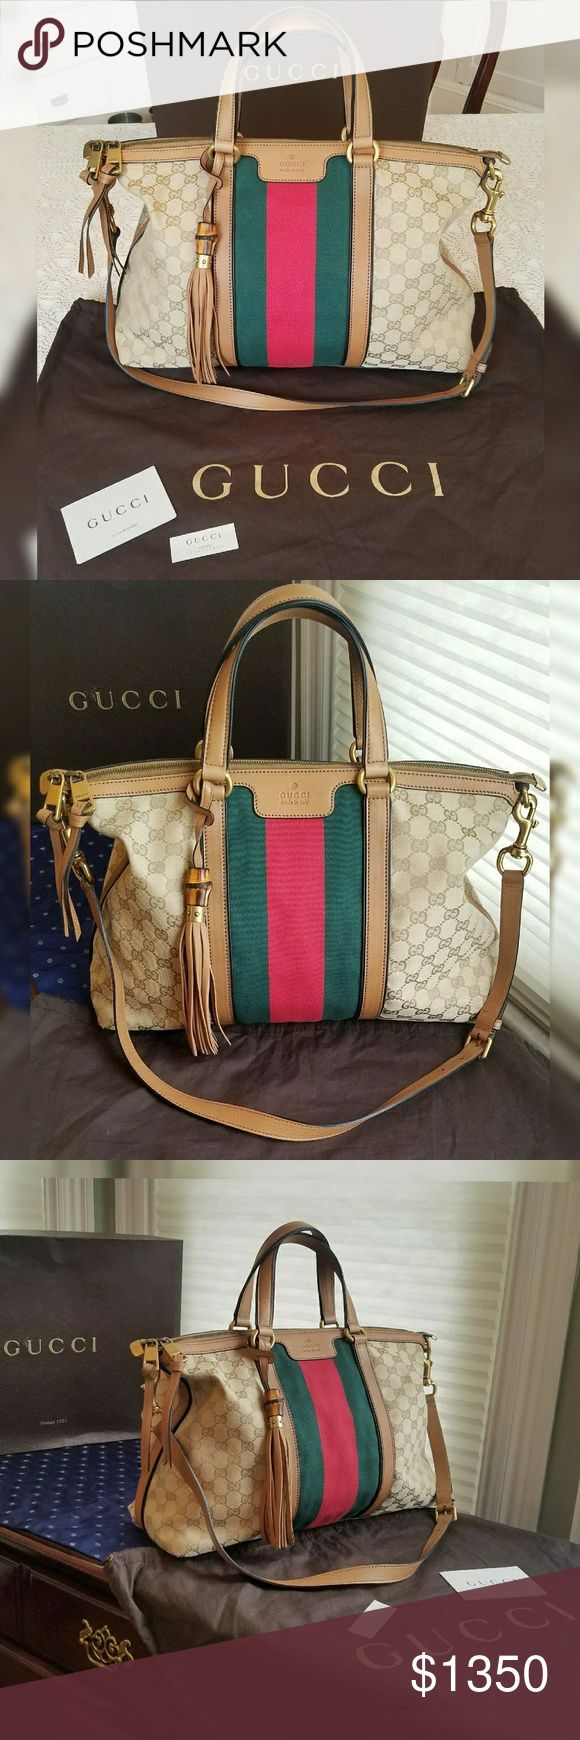 """GUCCI RANIA GG CLASSIC VINTAGE WEB CANVAS BAG Original beige khaki GG canvas with tan/ sand leather detail and green and red nylon Web Embossed Gucci crest on the front Piping construction and black hand-painted edges Protective metal feet Interior zip and smart phone pockets Top handle with 4.7"""" drop Detachable and adjustable shoulder strap with 15.3"""" drop Double top zip closure with knotted double zip closures Medium16""""W x 11""""H x 5""""D Mint condition and never carried. One scratch to…"""